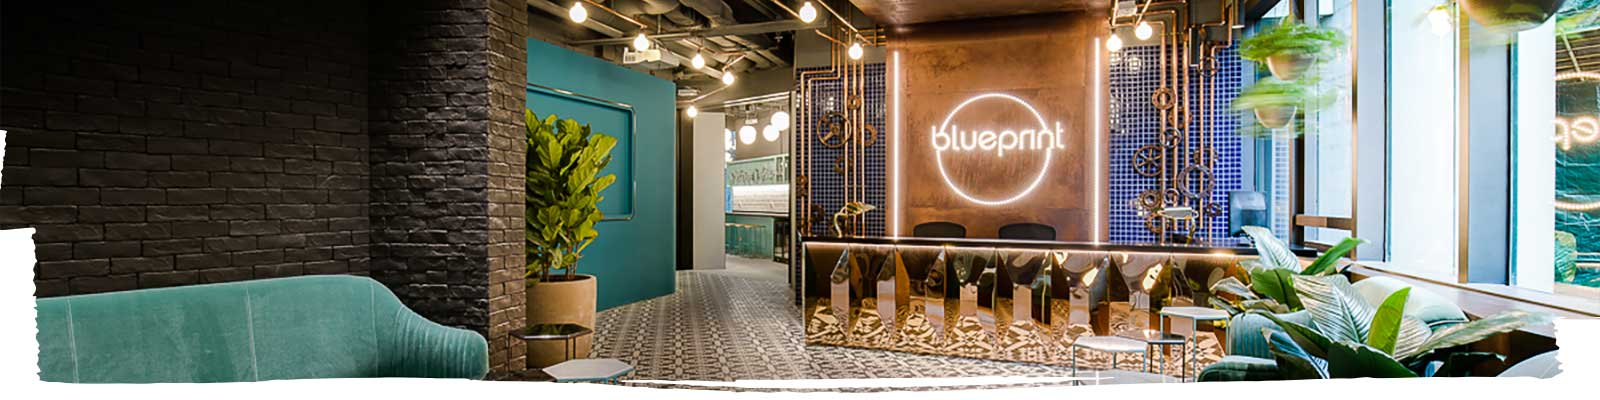 Blueprint co-working space